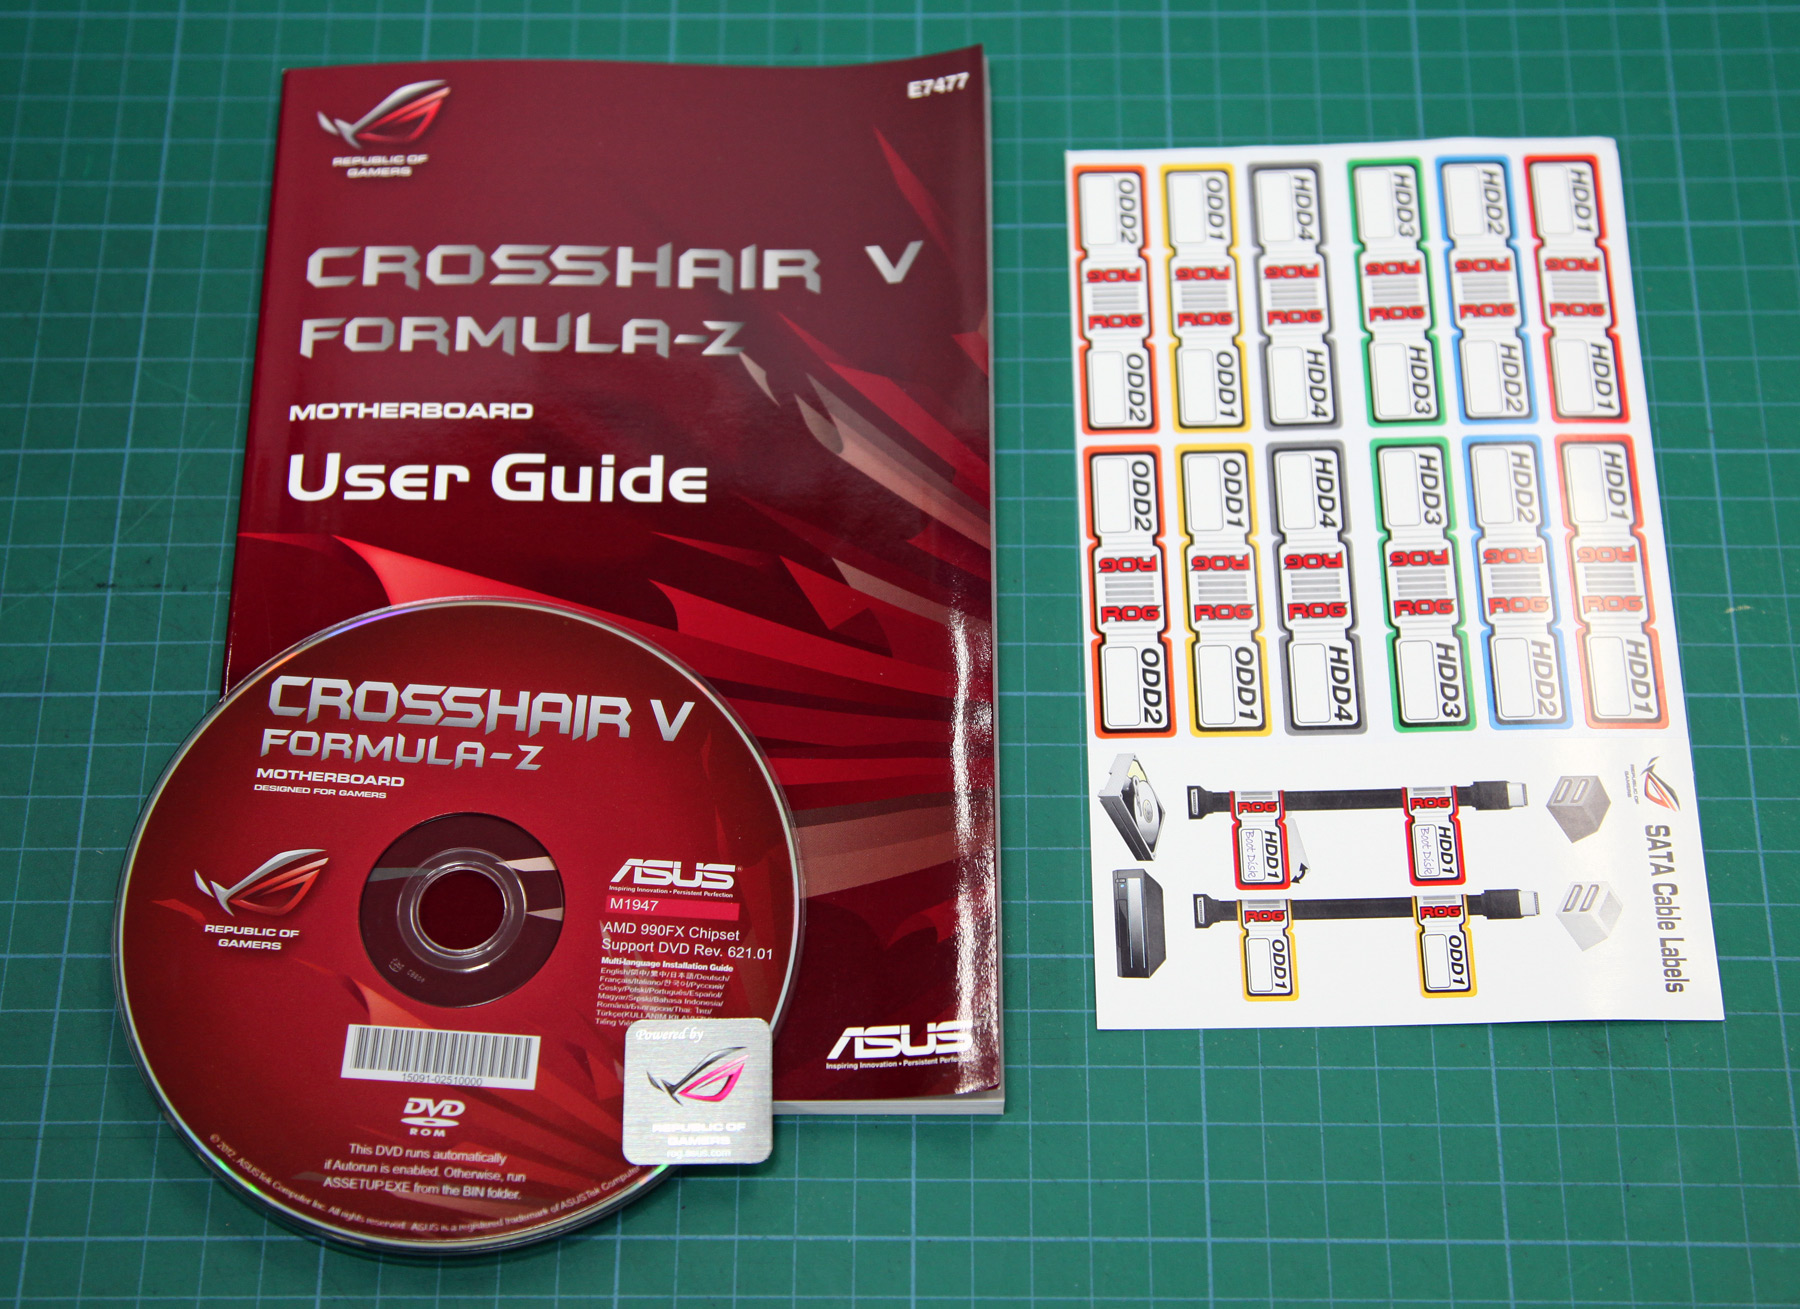 Unboxing The Crosshair V Formula Z Asus Usb Cable Wiring Diagram Six Sata Cables With 90 Degree Connectors For Flush Fitting Within Case Q Shield And An Rog Connect